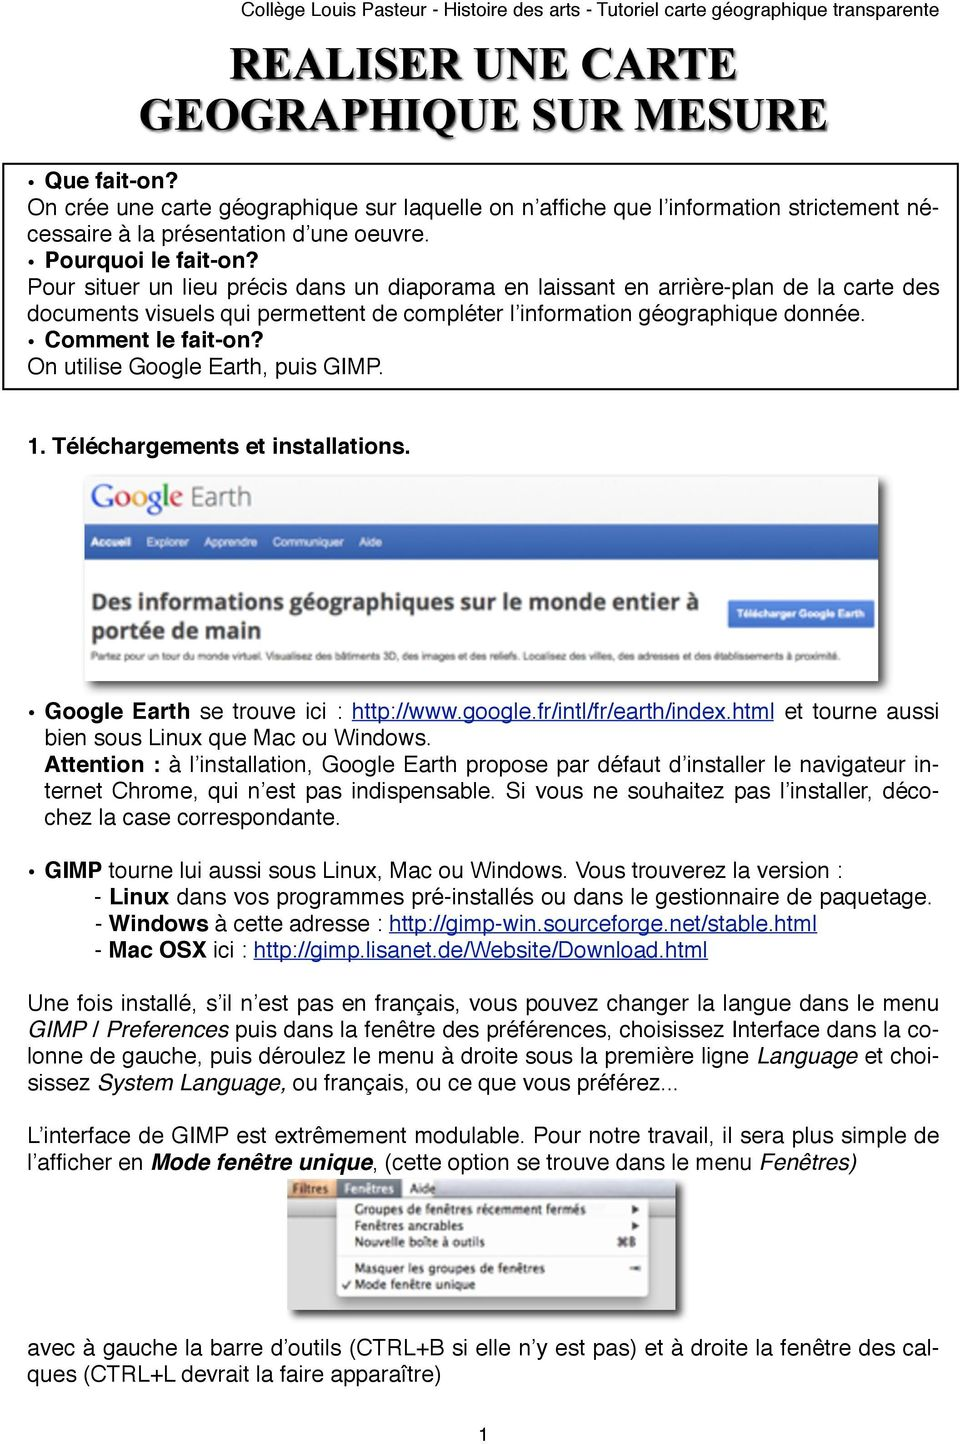 Comment le fait-on? On utilise Google Earth, puis GIMP. 1. Téléchargements et installations. Google Earth se trouve ici : http://www.google.fr/intl/fr/earth/index.